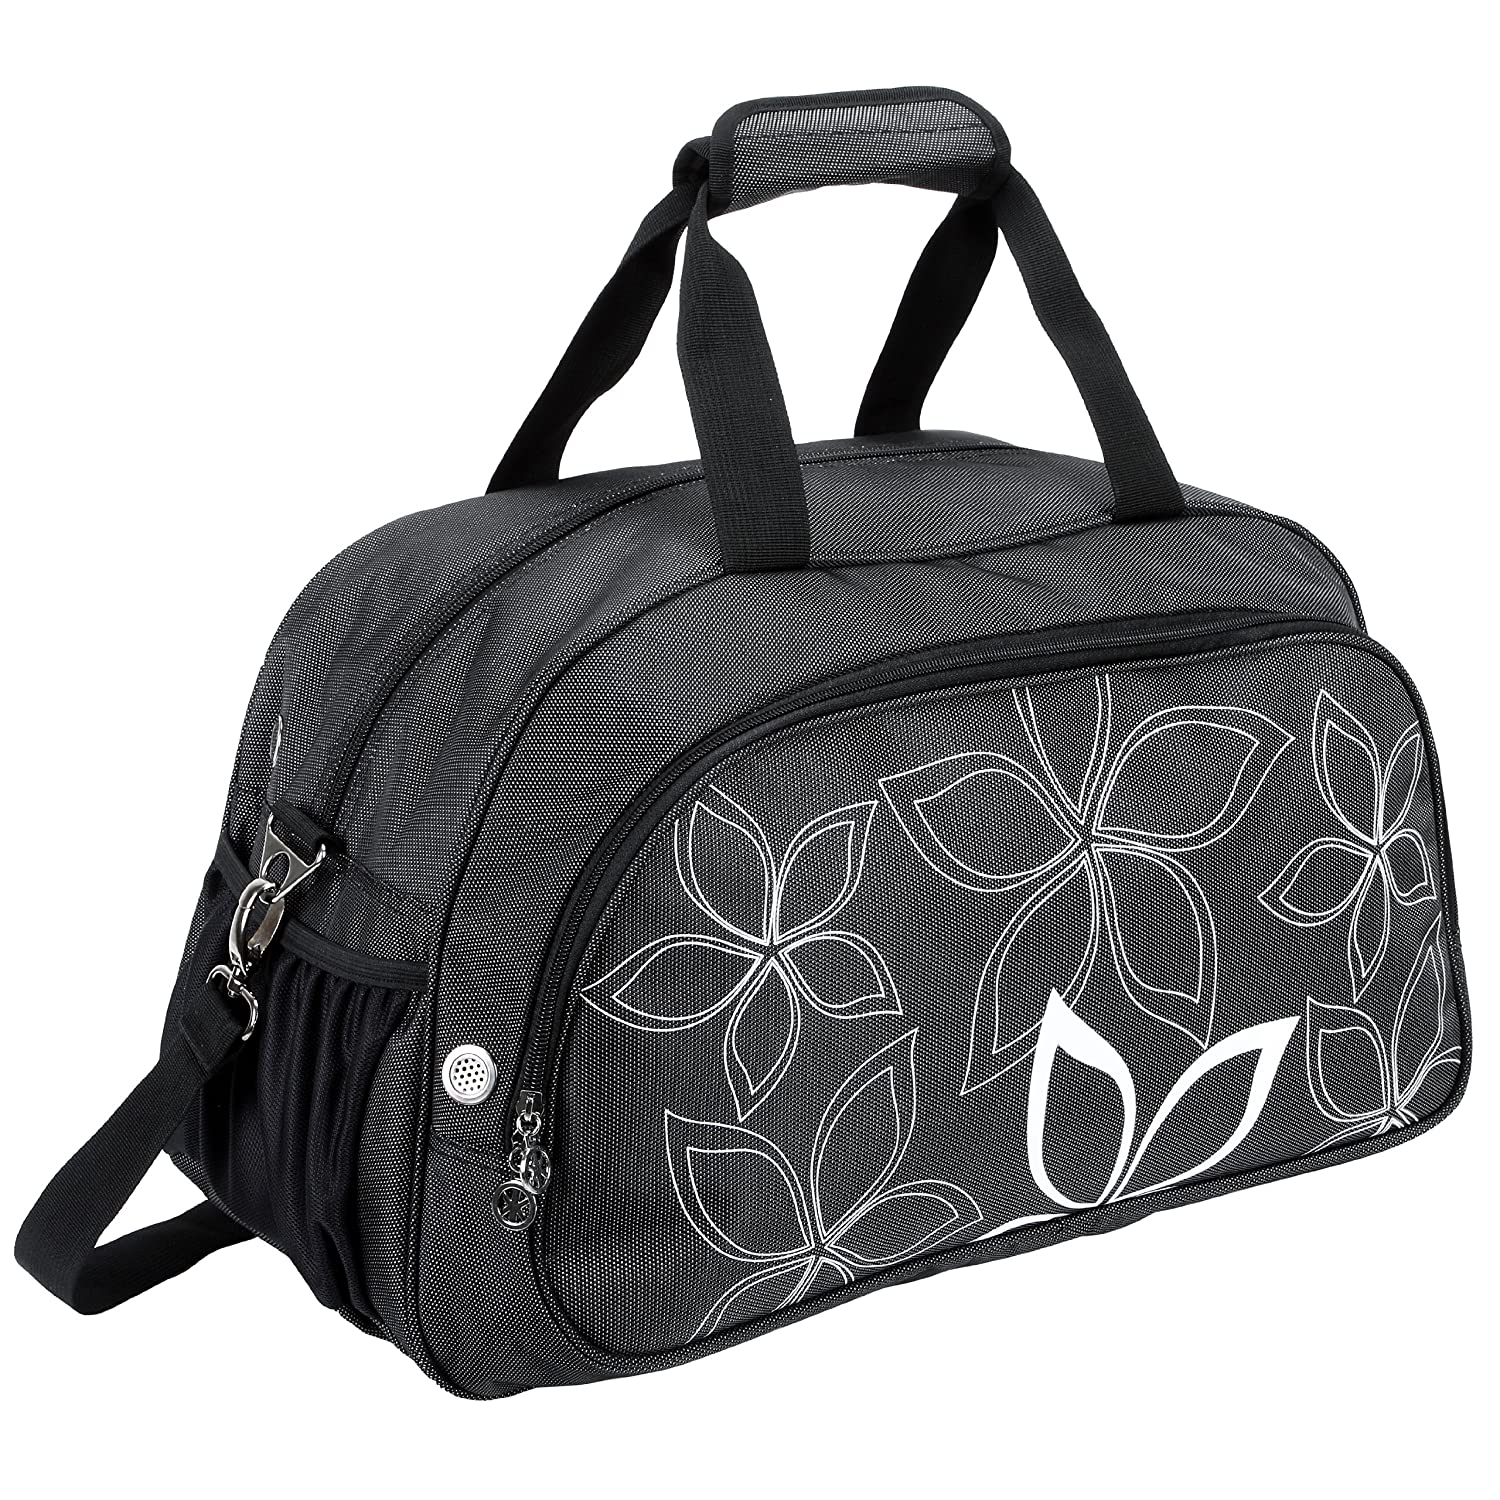 20 Fashionable Flowers Pattern Sports Gym Tote Bag Travel Carryon MyGift BBP1122SSFRED